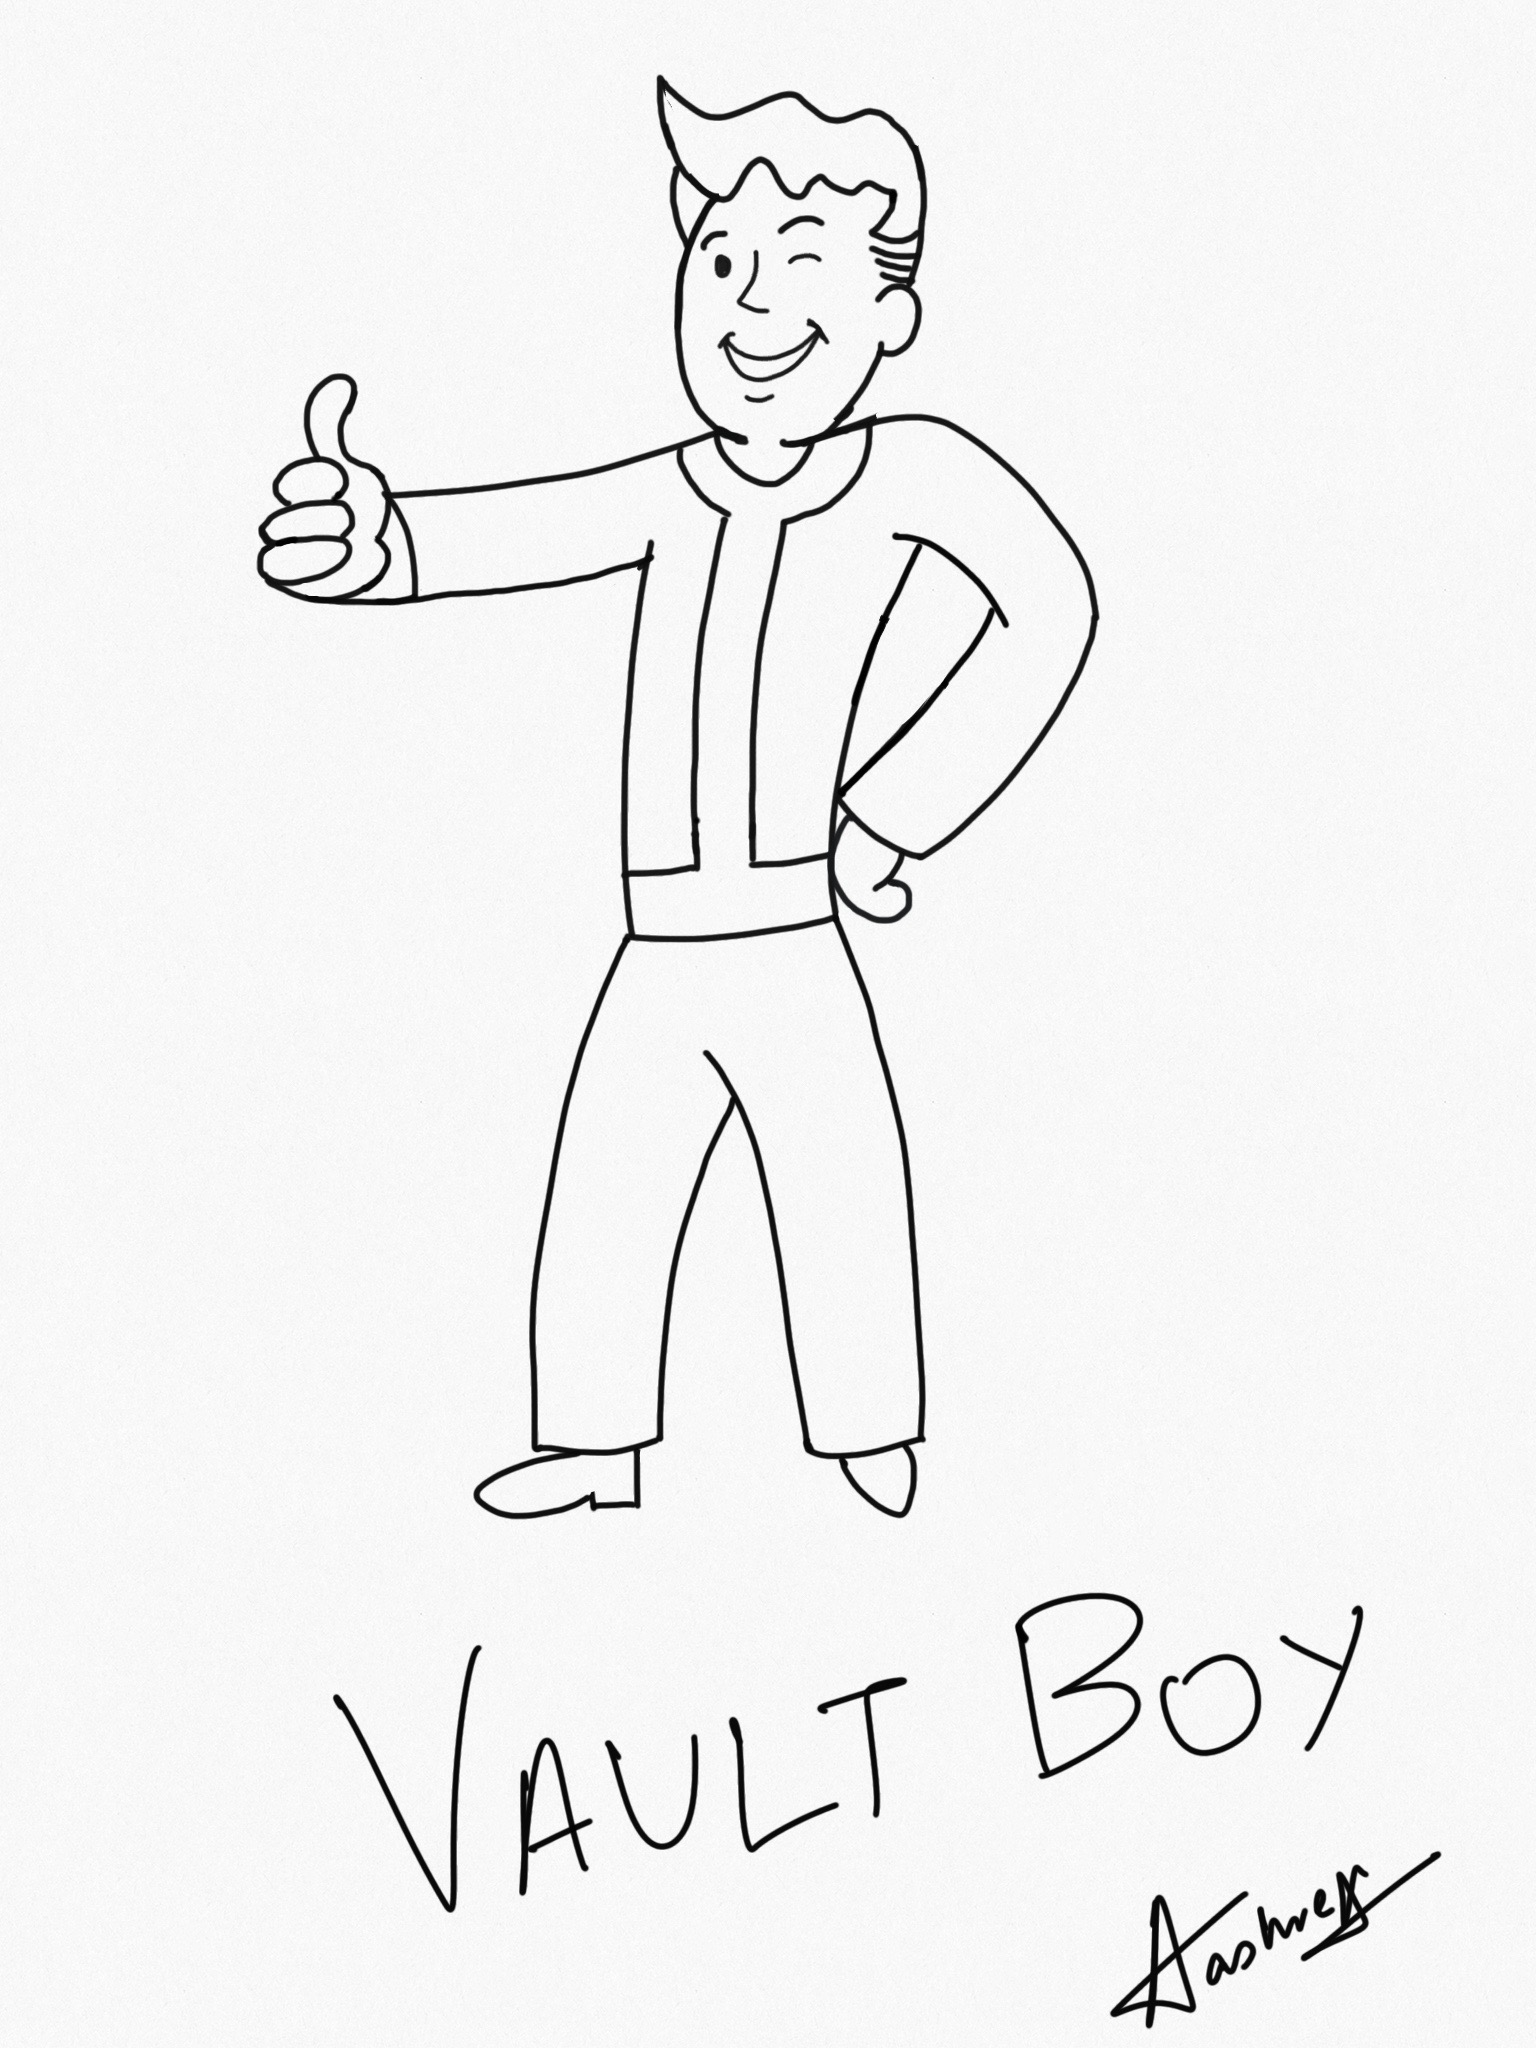 Vault Boy from Fallout